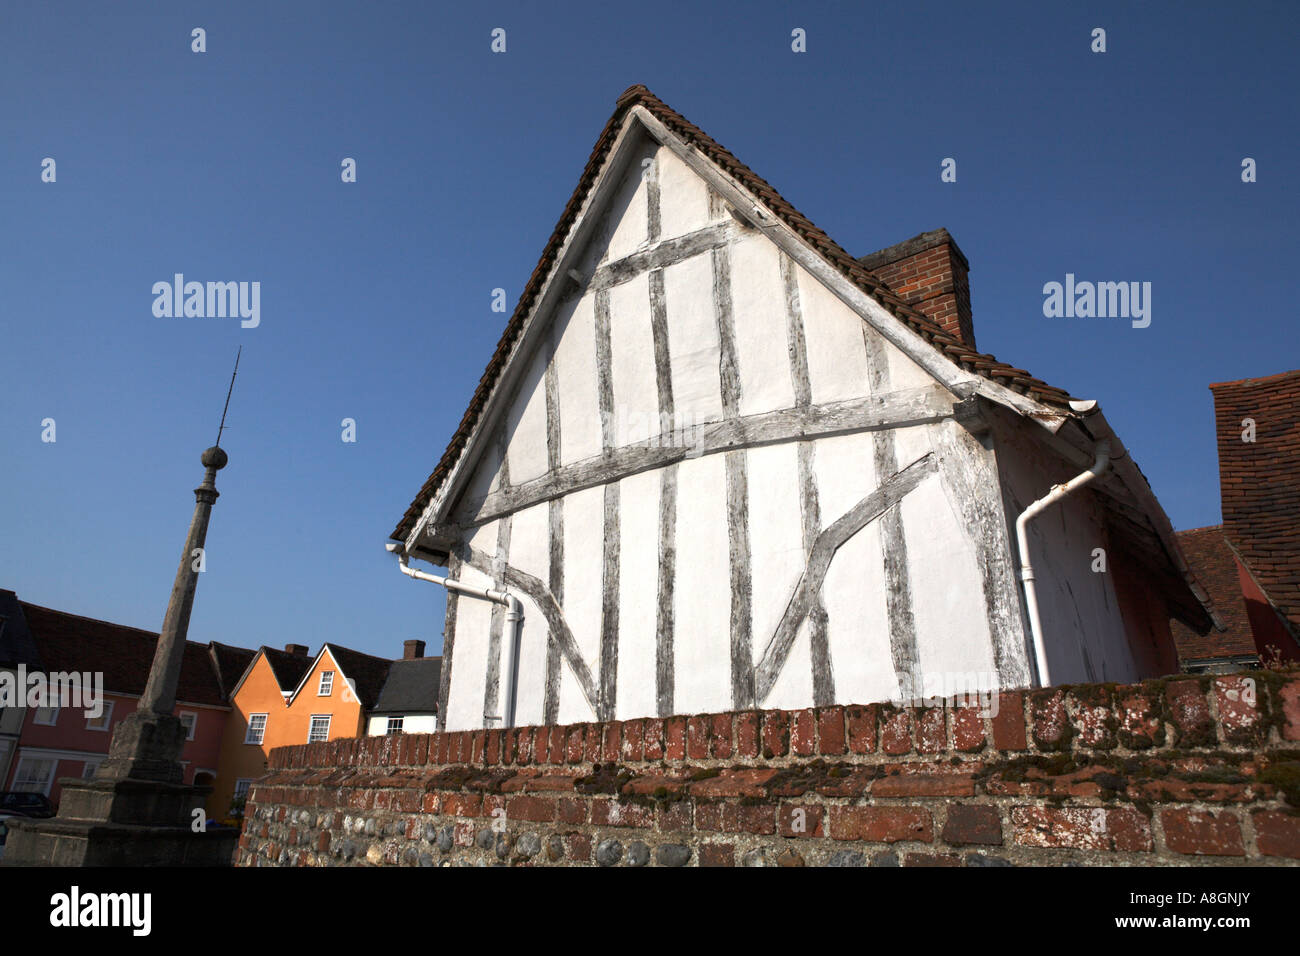 Lavenham Suffolk England The Toll Cottage Timber frame and limewash medieval architecture building Market Square - Stock Image